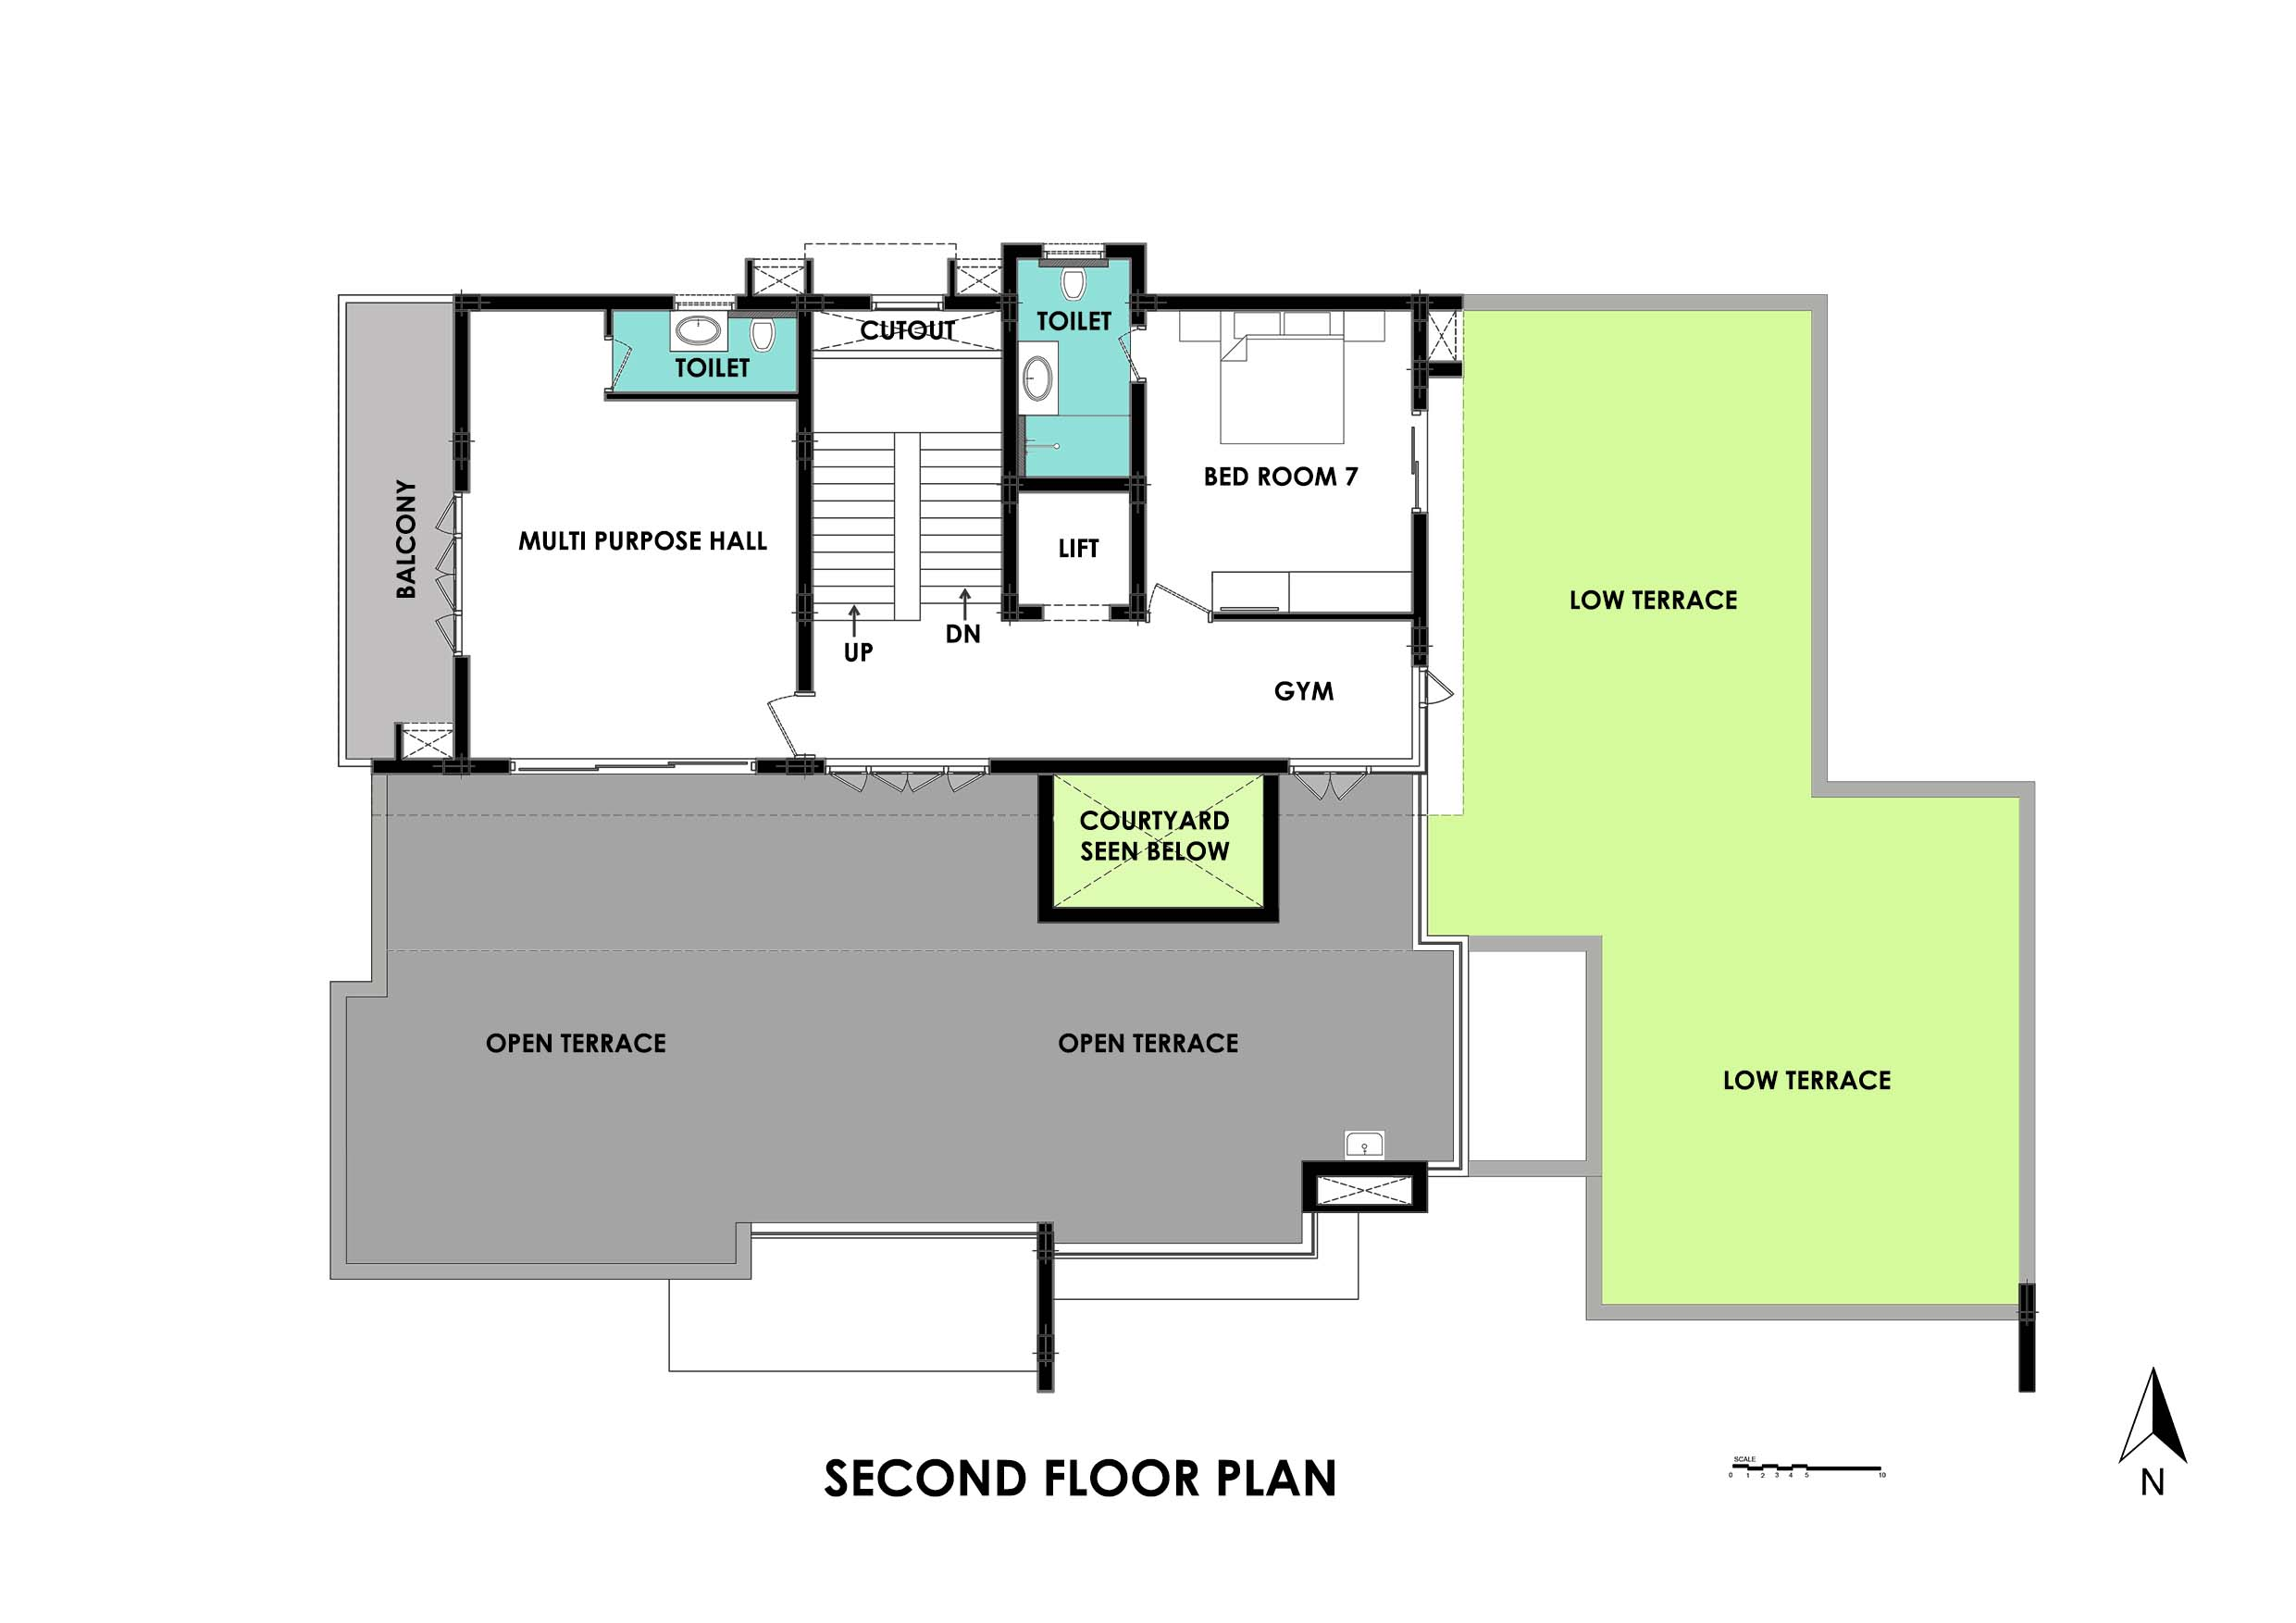 outspread_house_second_floor